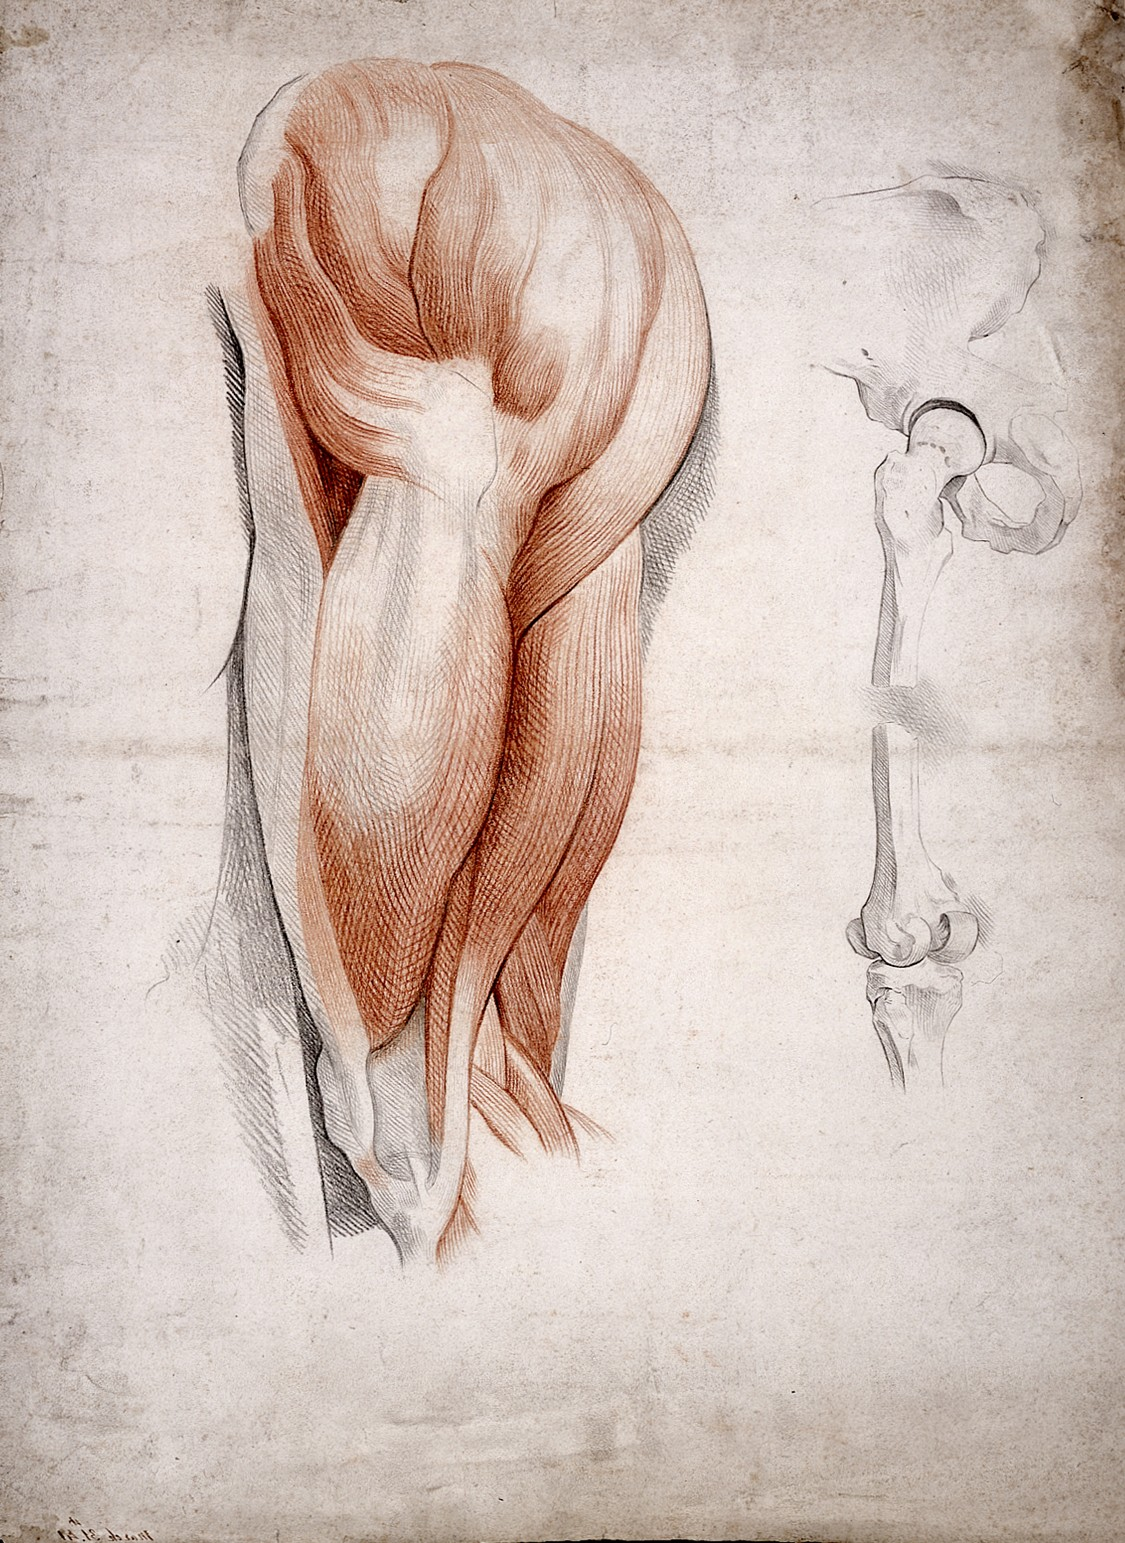 Filethe Bones And Muscles Of The Hip And Thigh Drawing 1841